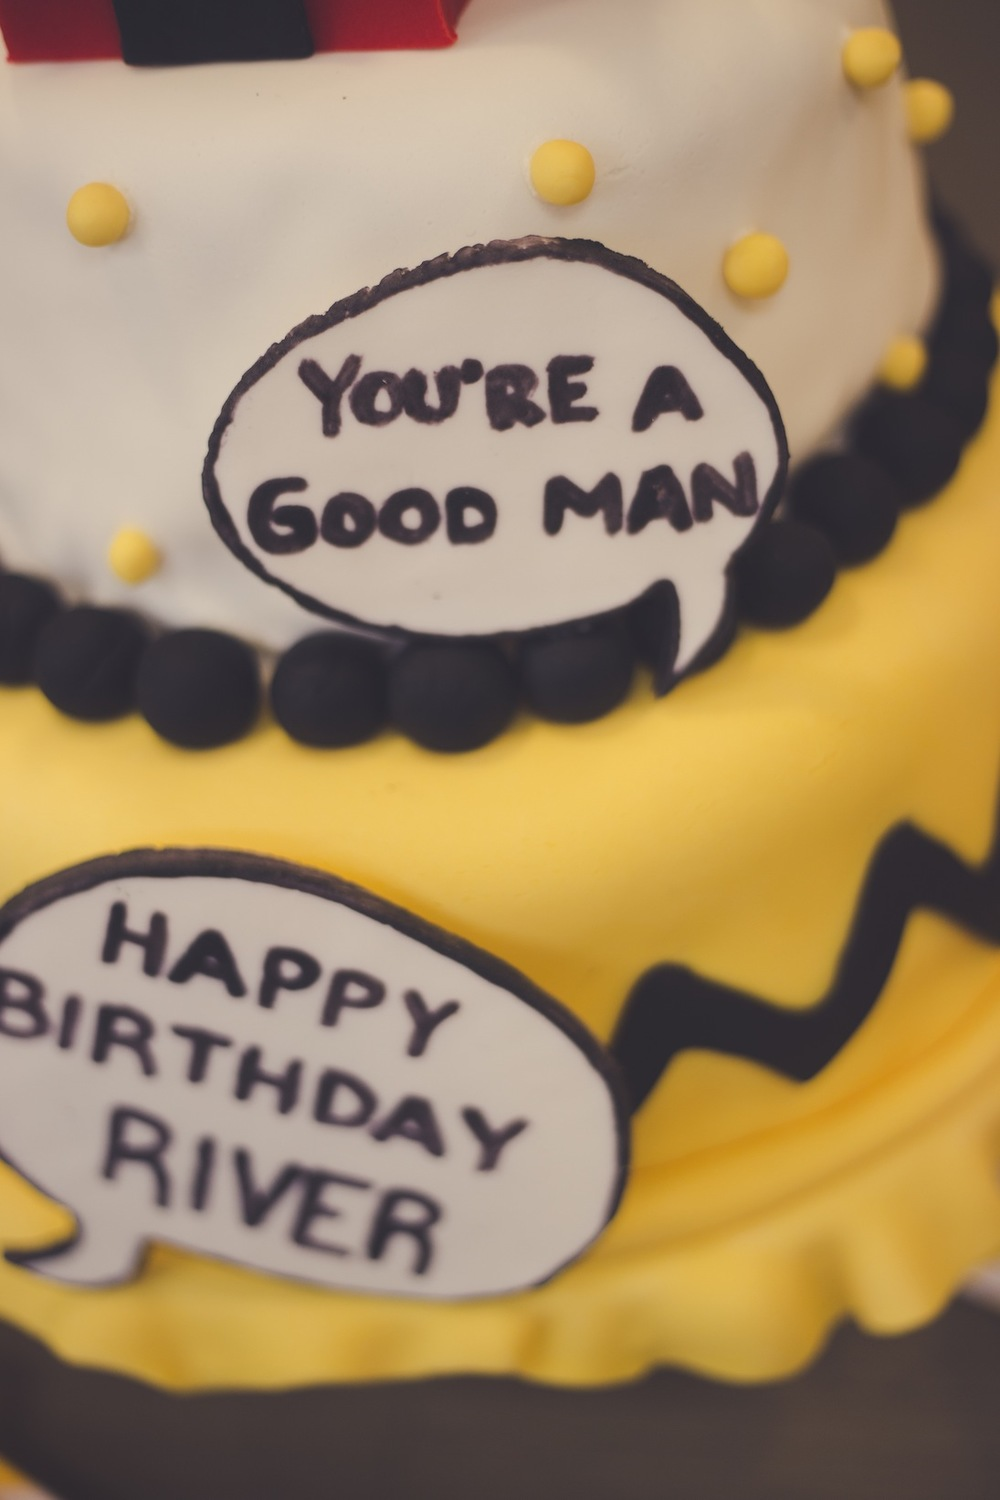 River'sBirthday_014.jpg